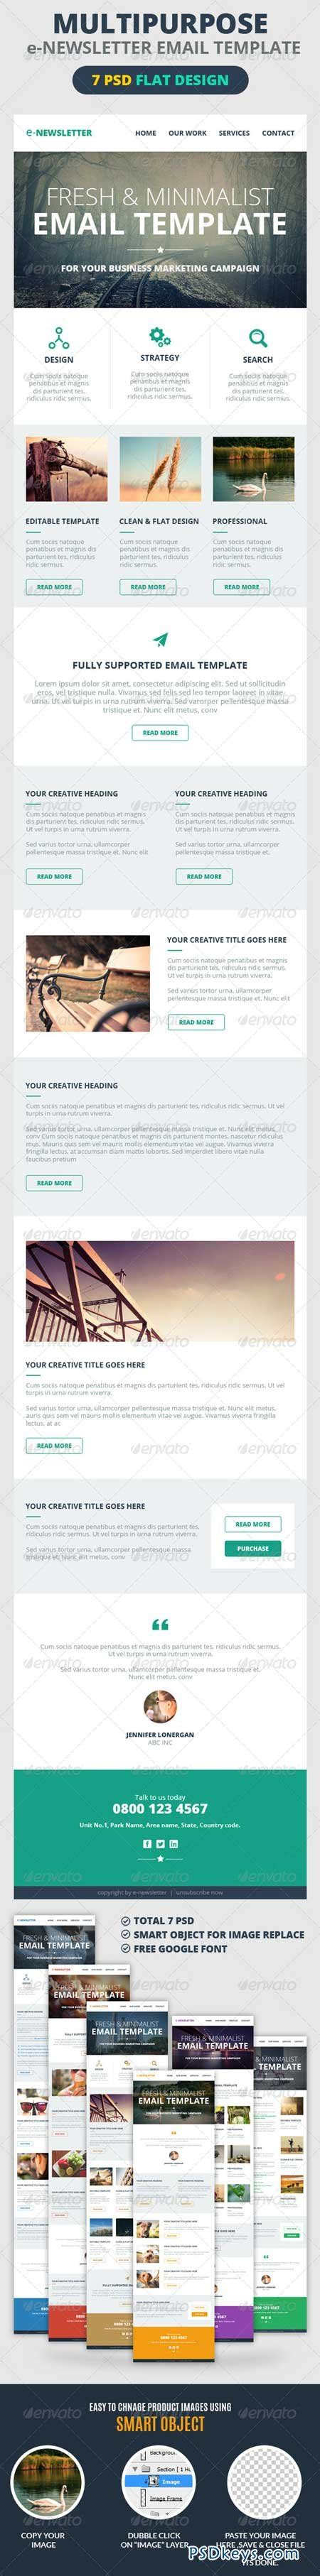 Multipurpose E Newsletter Email Template 7201434 187 Free Download Photoshop Vector Stock Image How To Create A Newsletter Template In Photoshop